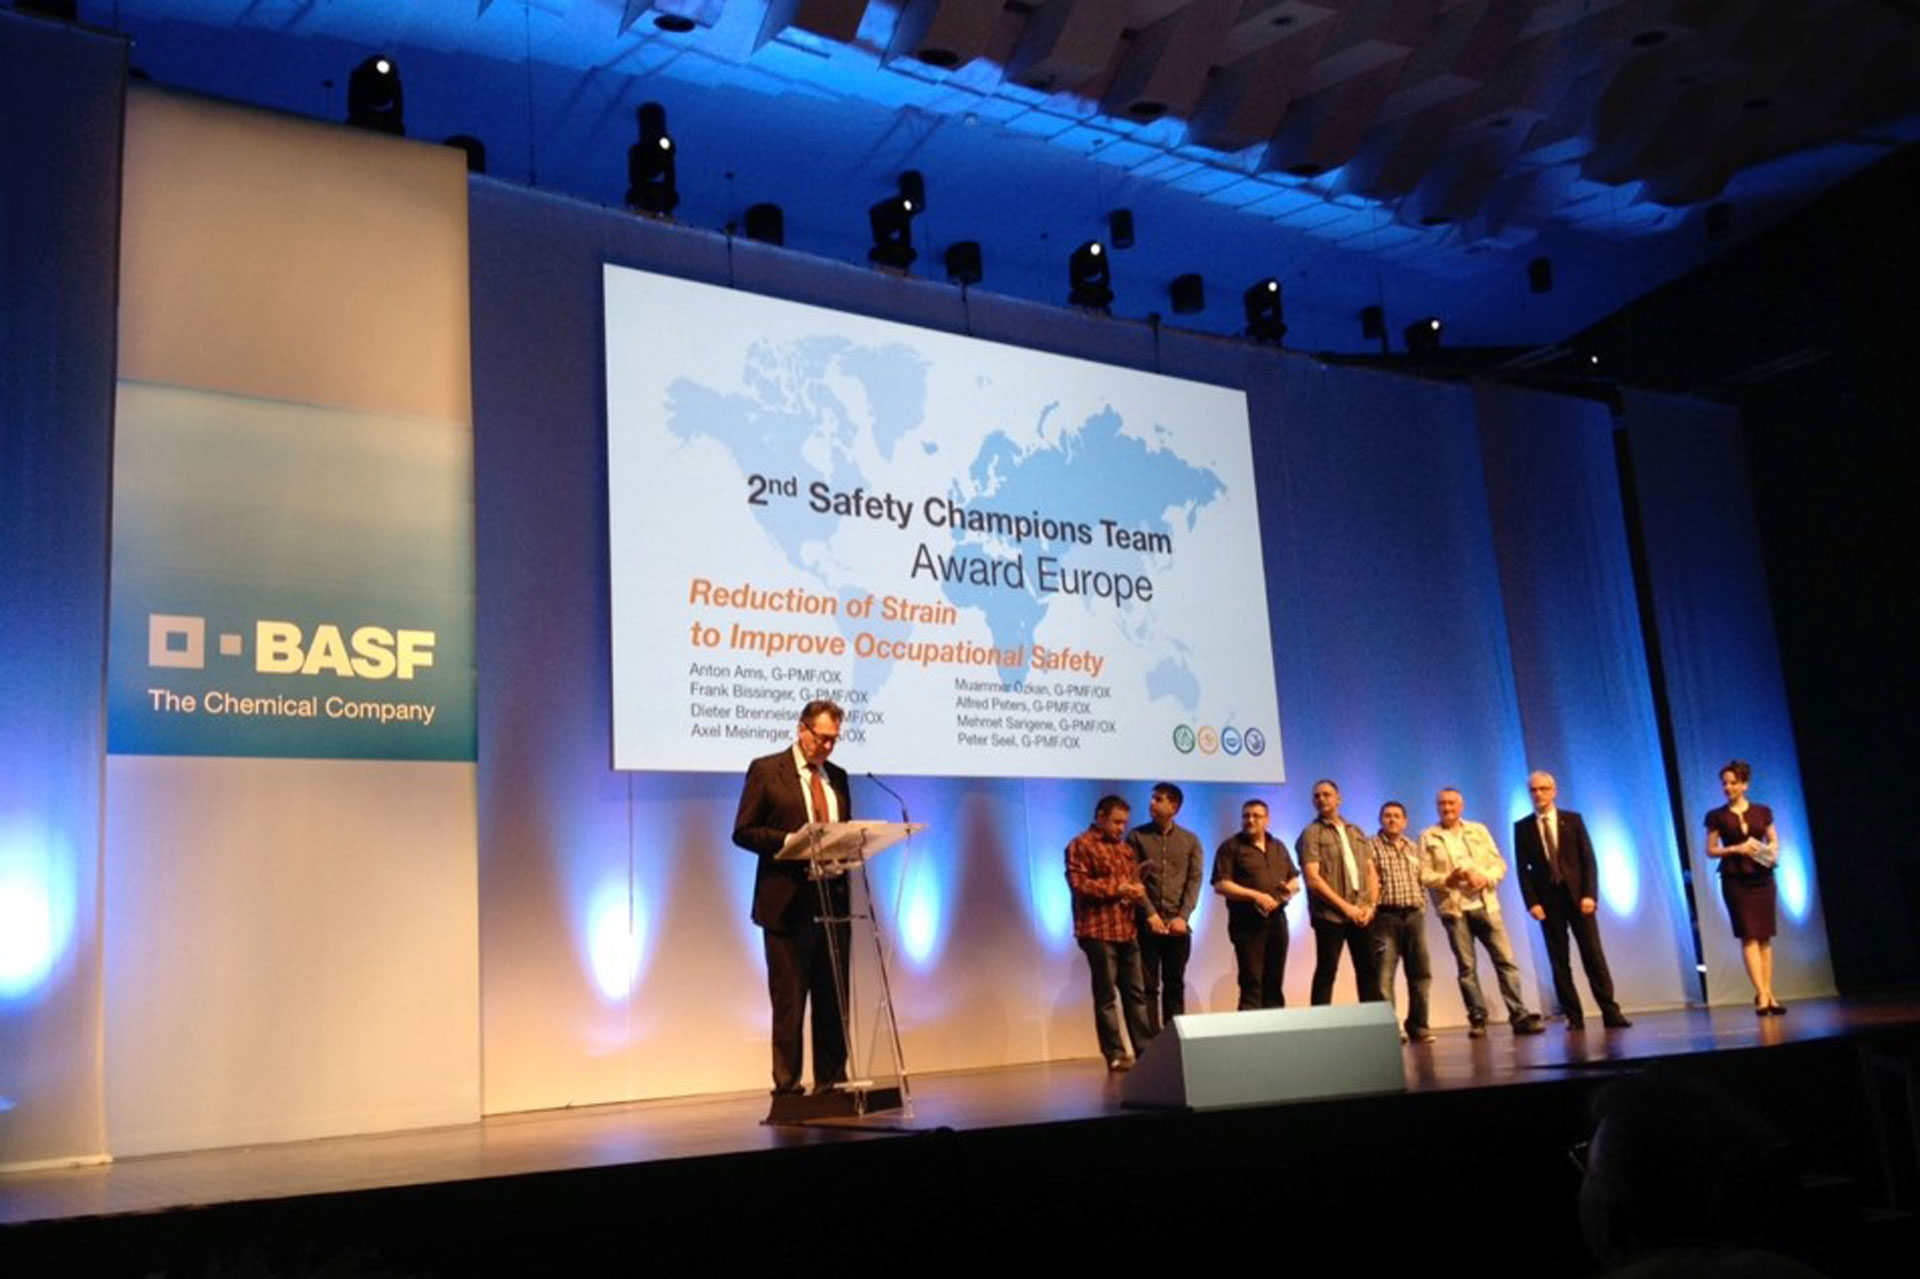 Agentur Ressmann Mannheim BASF 2nd Safety Champions Team Award Europe